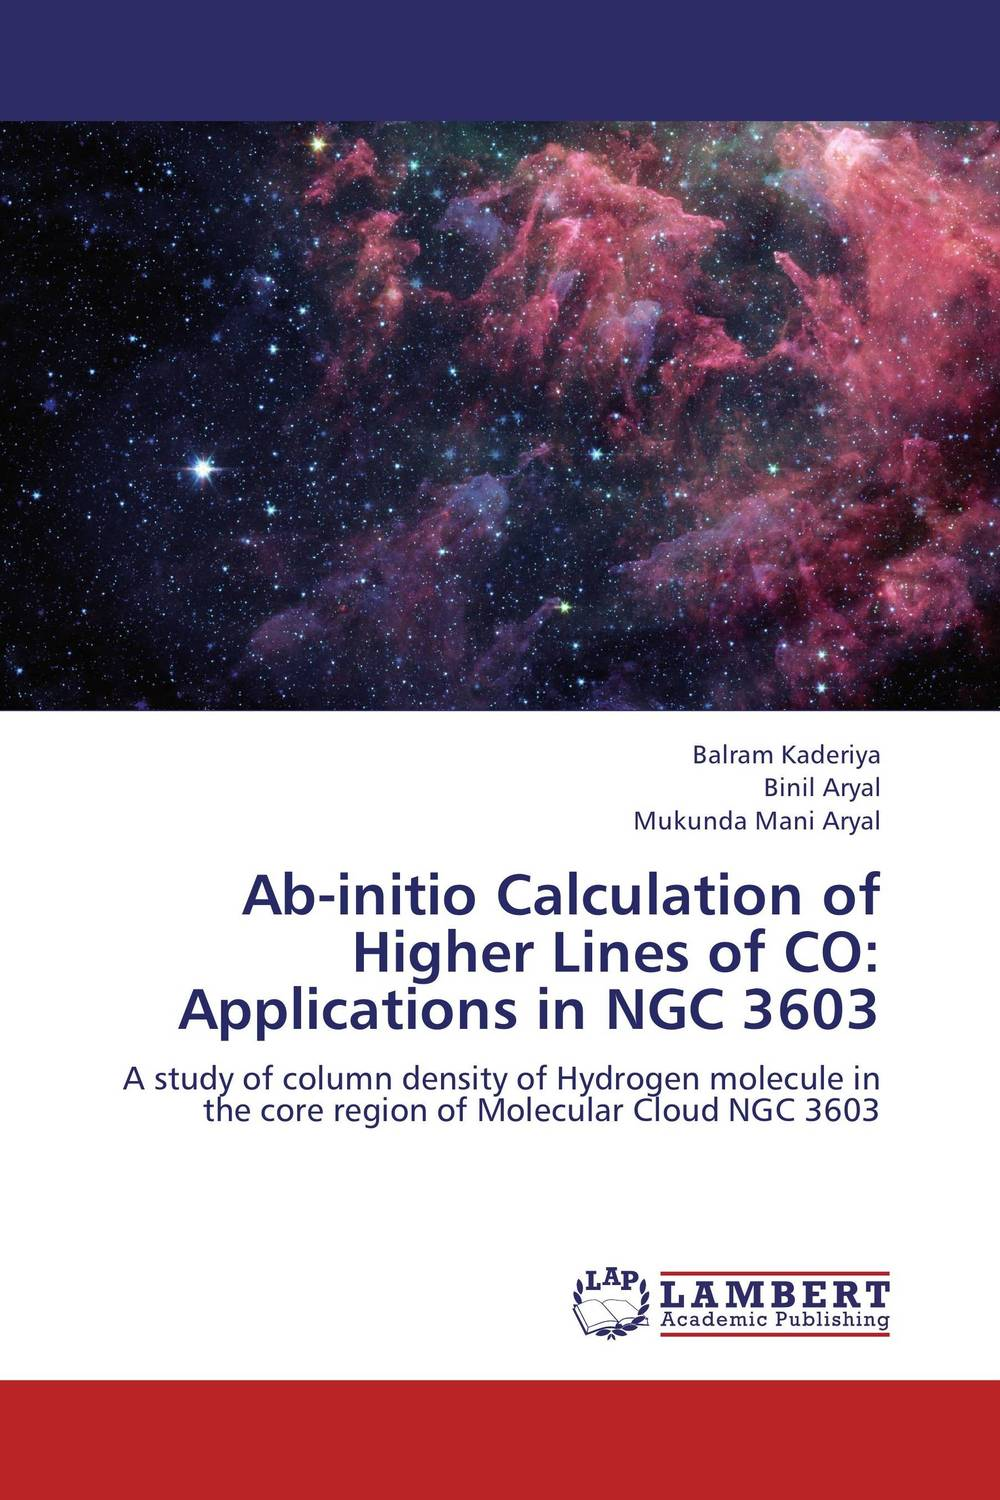 Ab-initio Calculation of Higher Lines of CO: Applications in NGC 3603 handbook of the exhibition of napier relics and of books instruments and devices for facilitating calculation